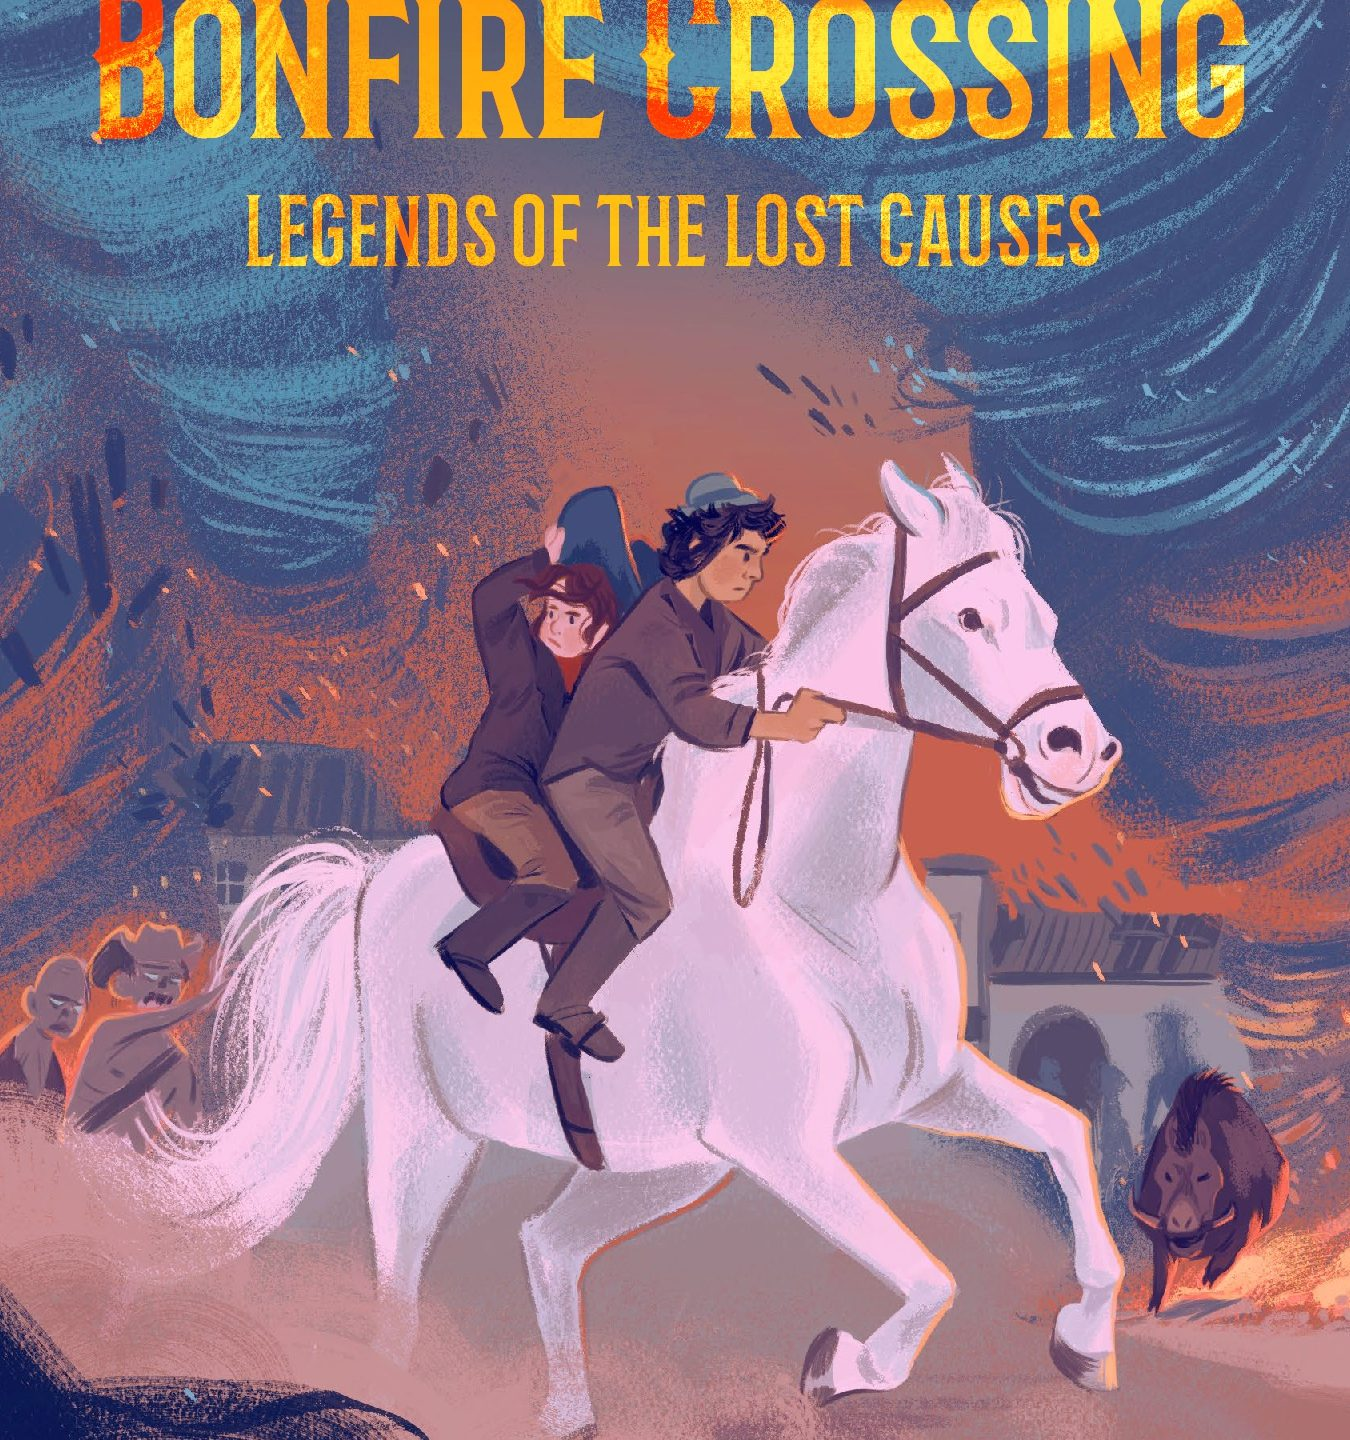 MG Cover Reveal: The Fang of Bonfire Crossing by Brad McLelland and Louis Sylvester